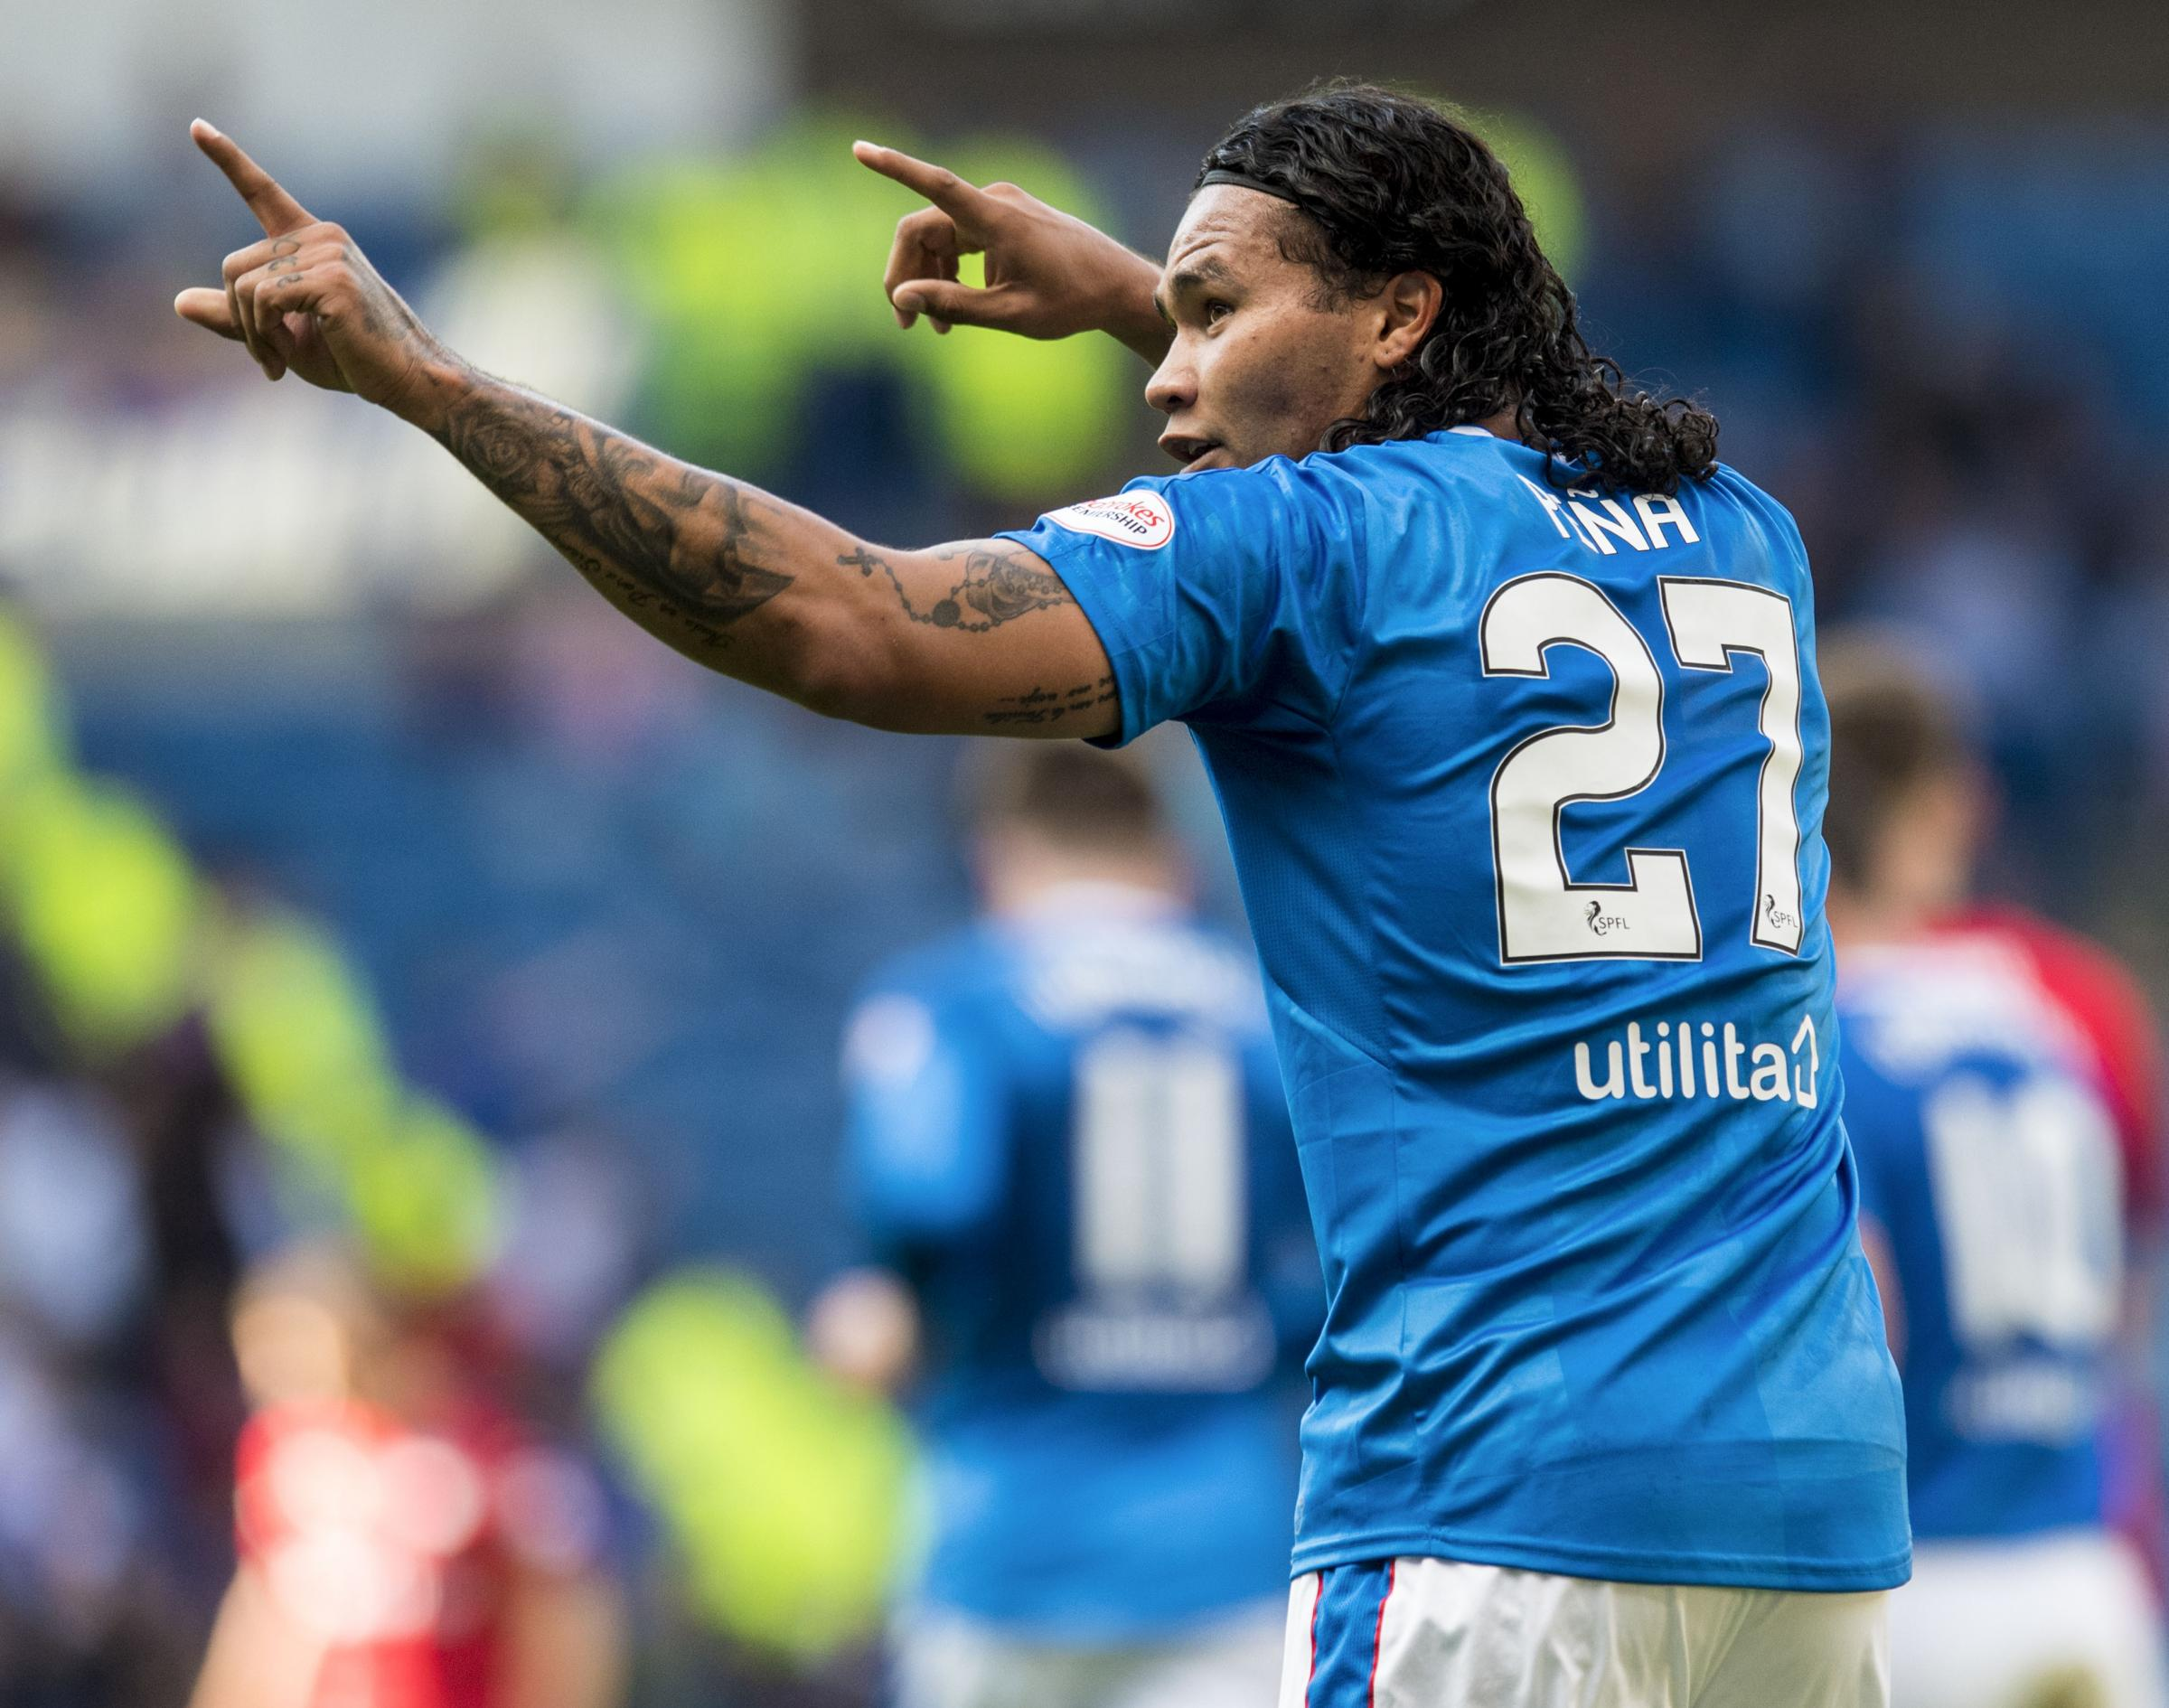 Carlos Pena celebrates his goal against Dundee